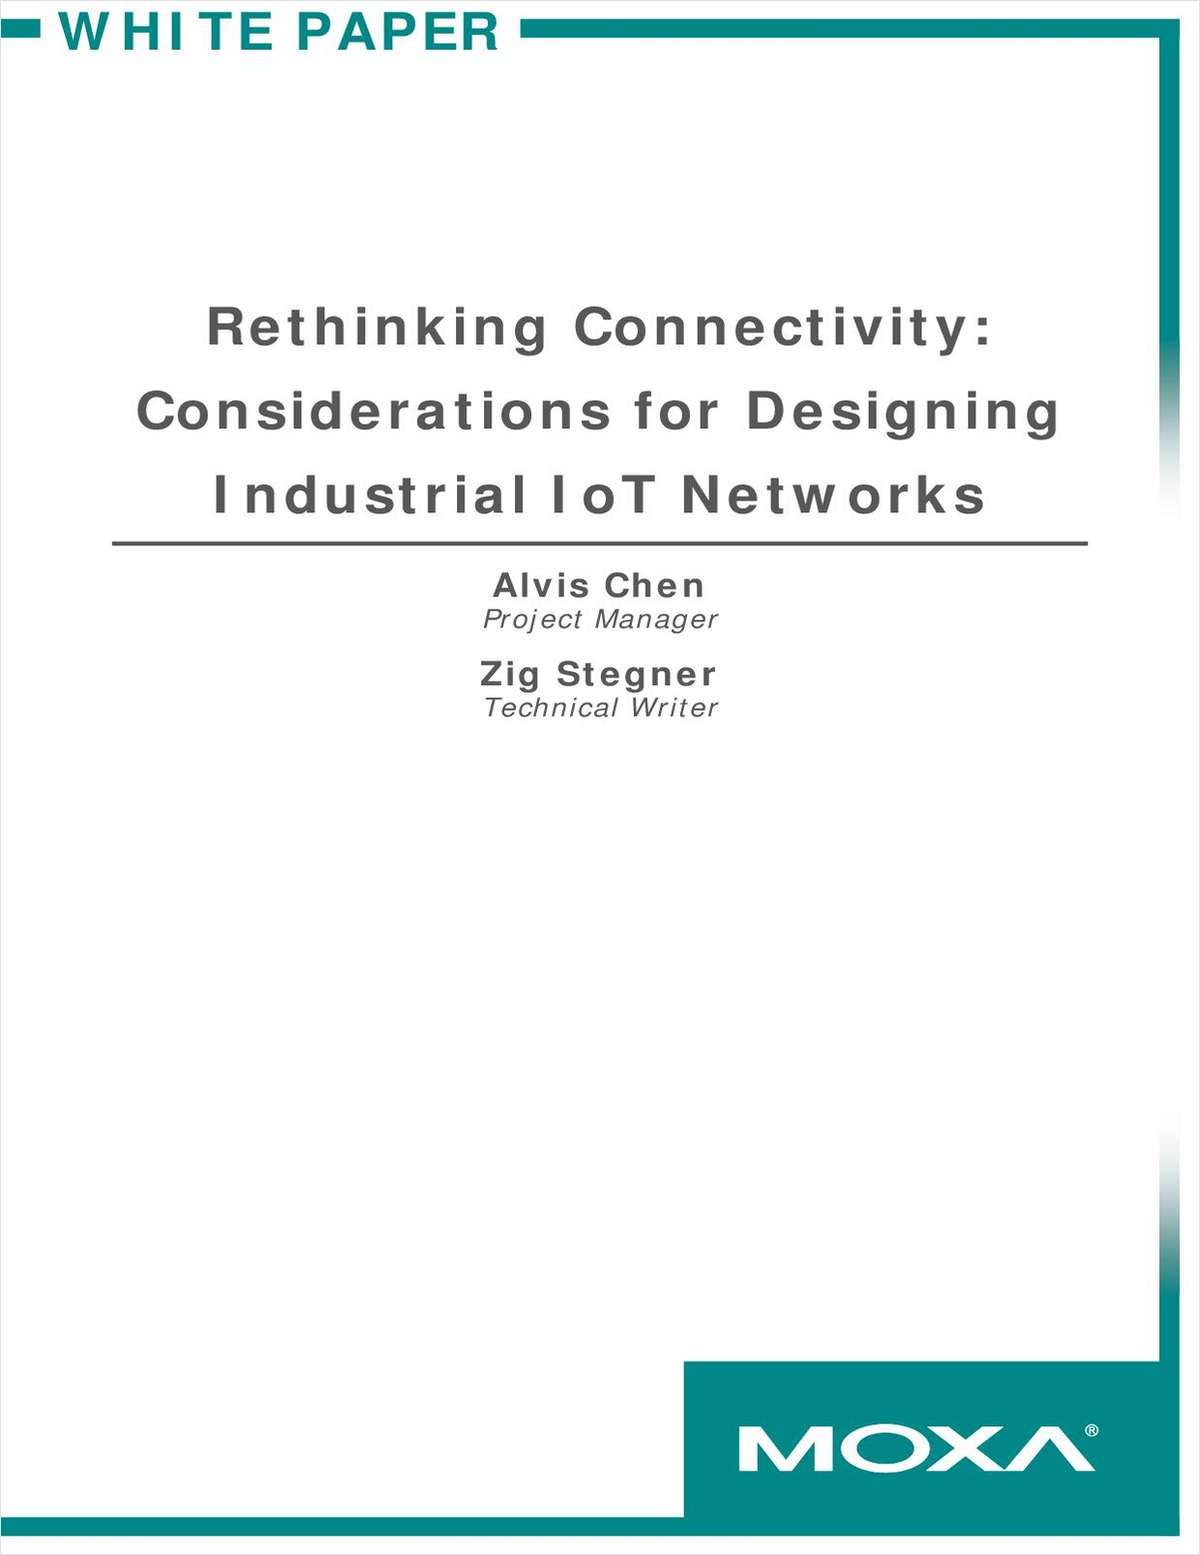 Rethinking Connectivity: Considerations for Designing Industrial IoT Networks